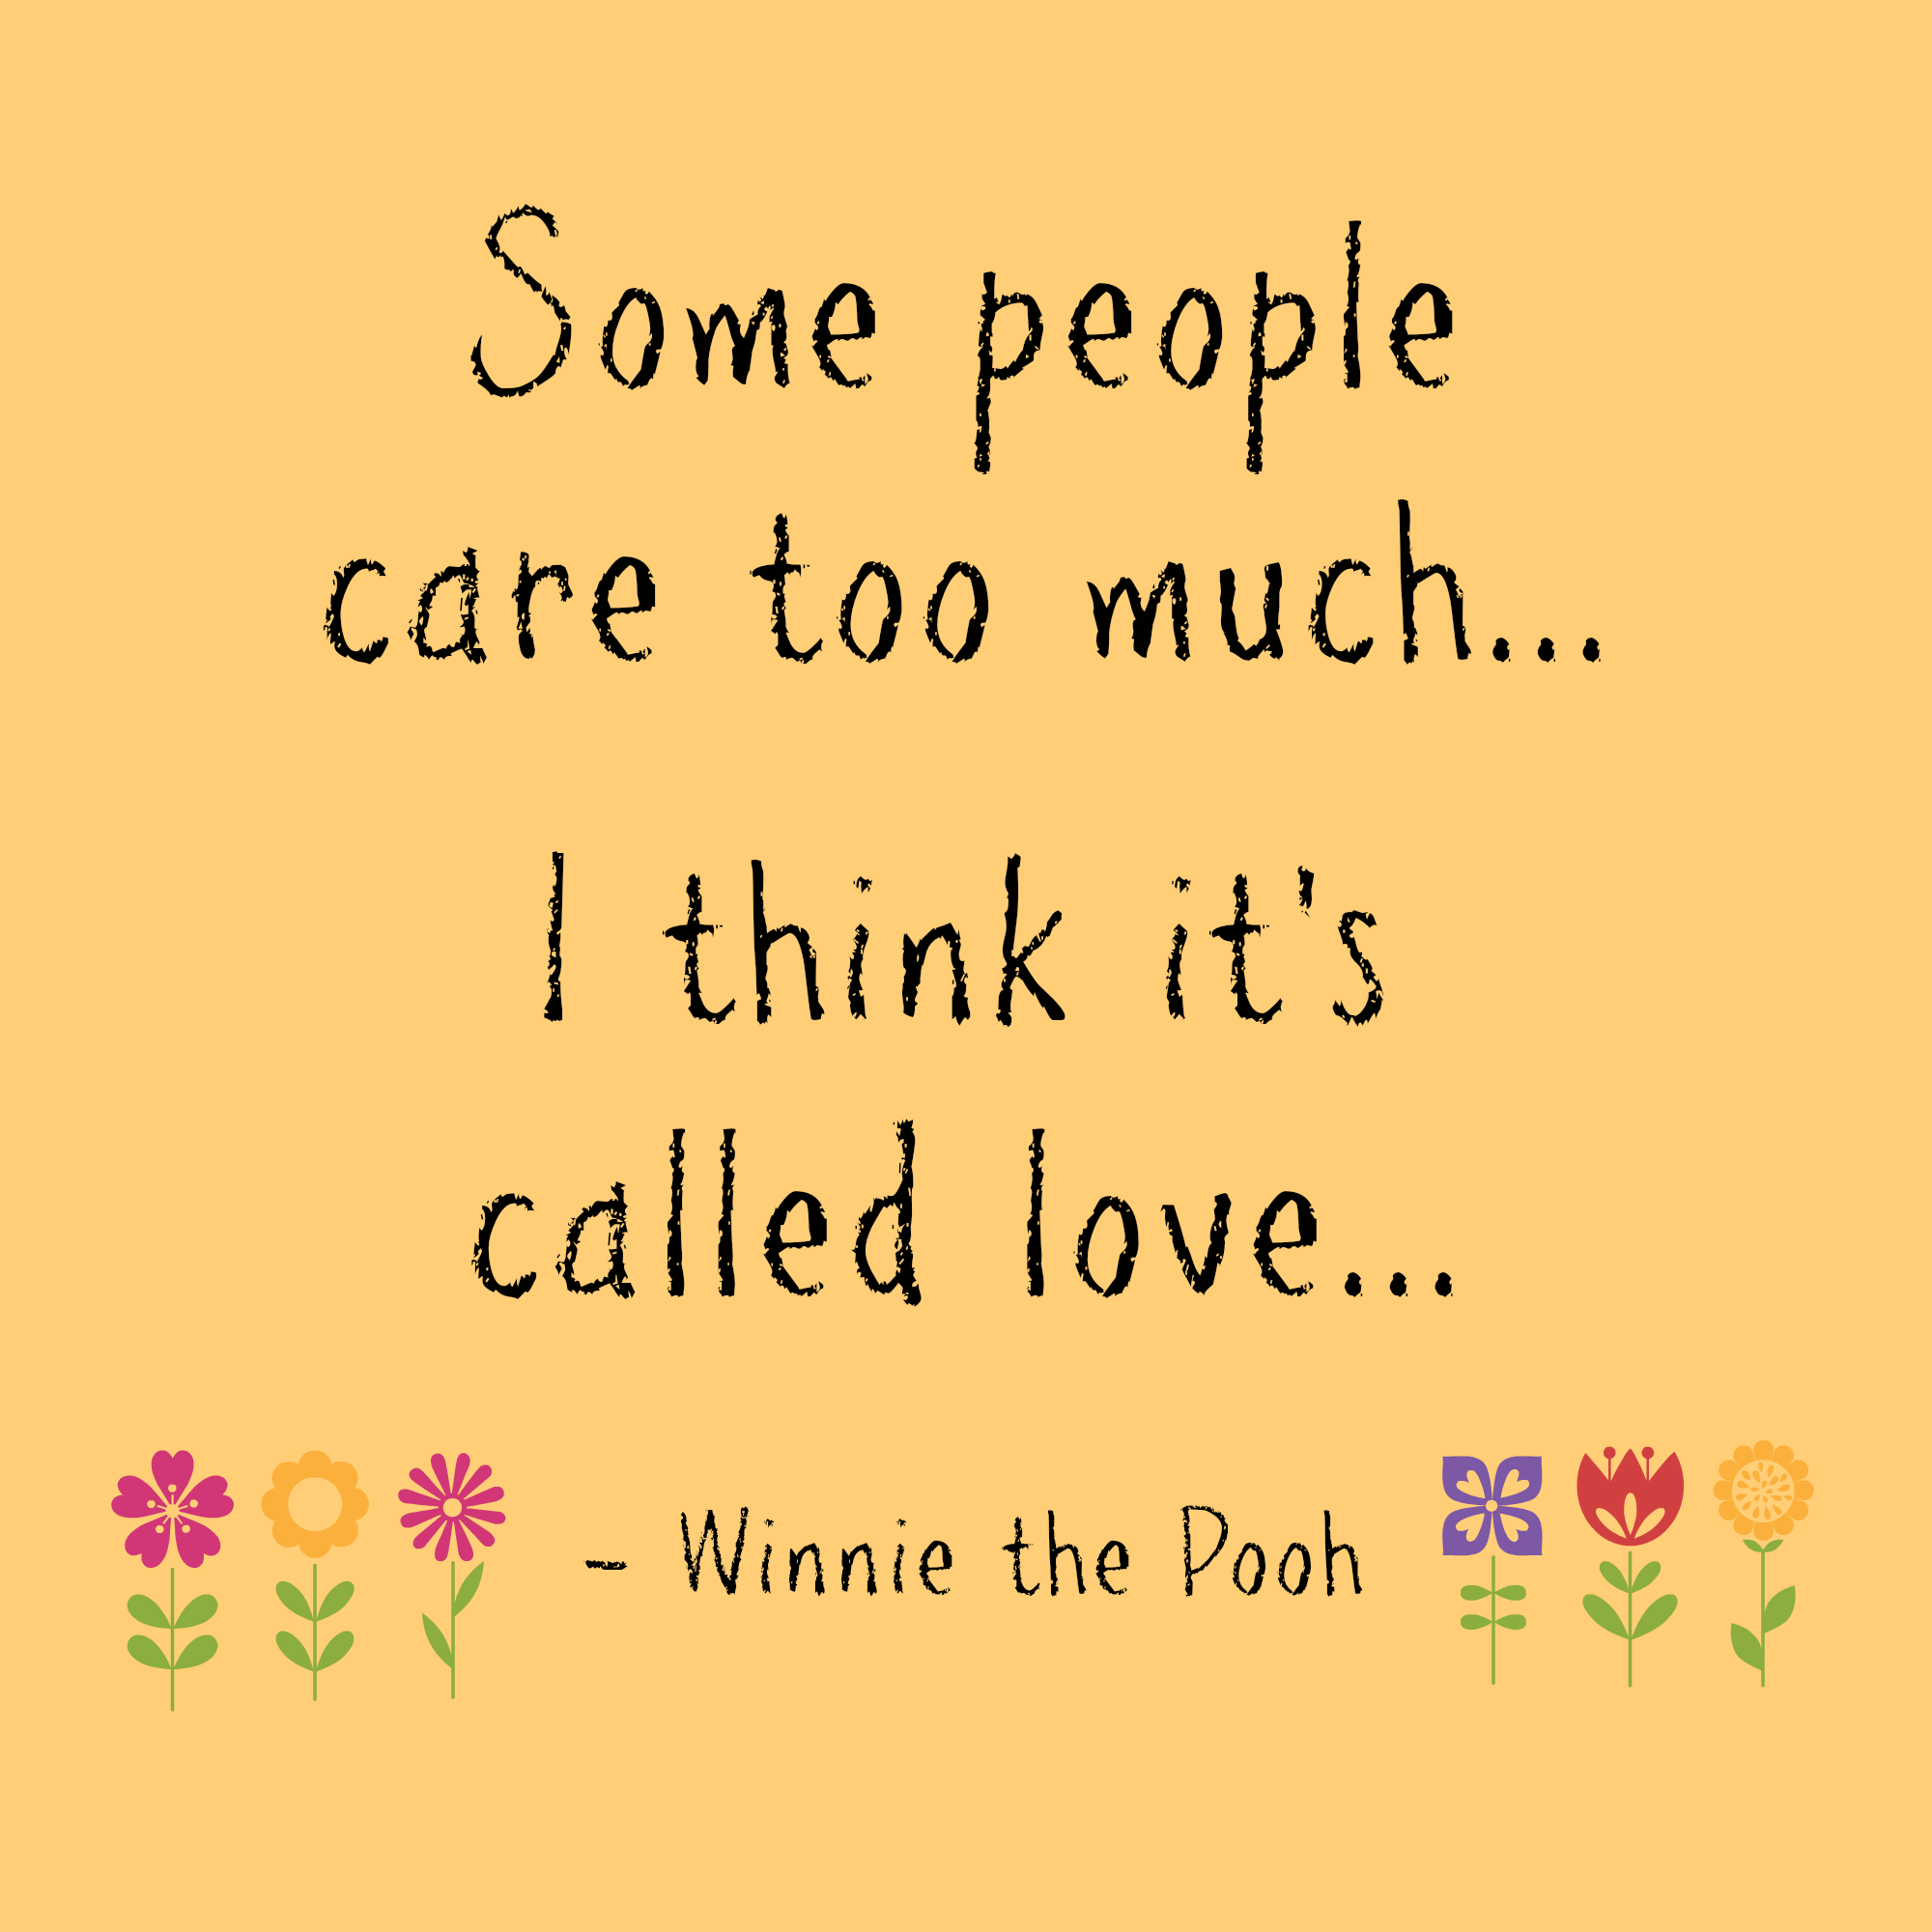 winnie the pooh quotes 12